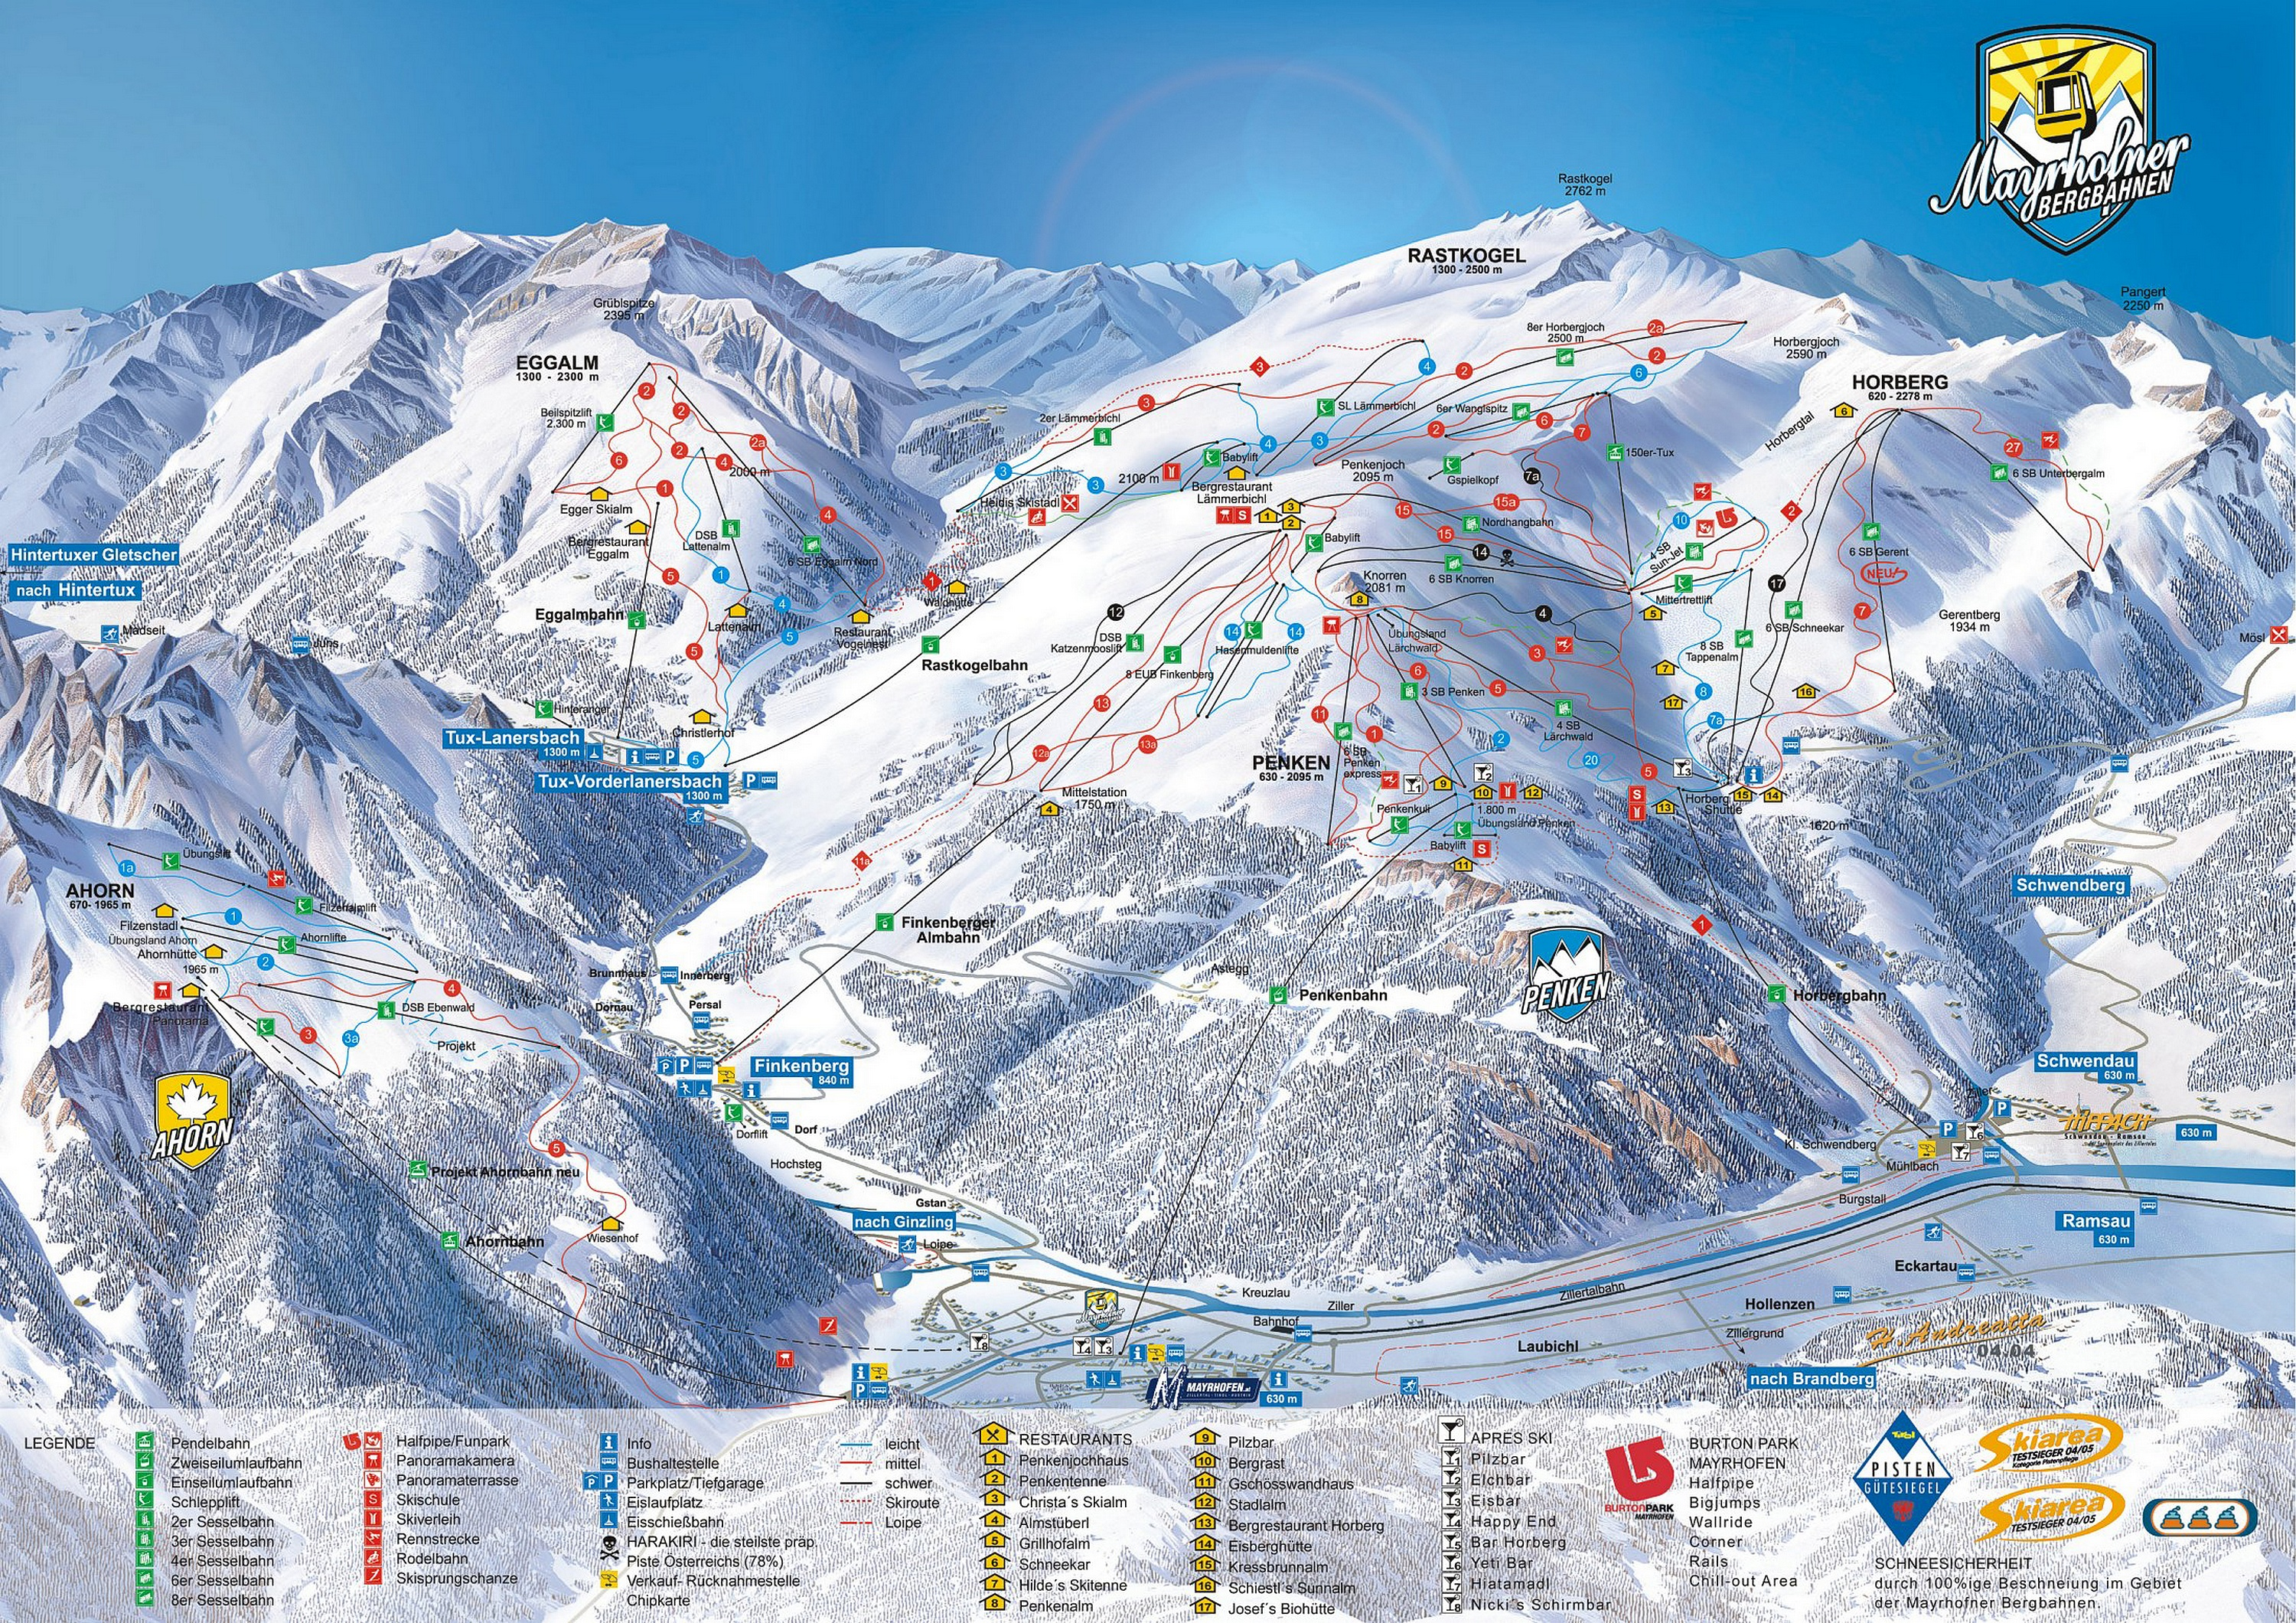 how to read a piste map (guide) - ski club of great britain